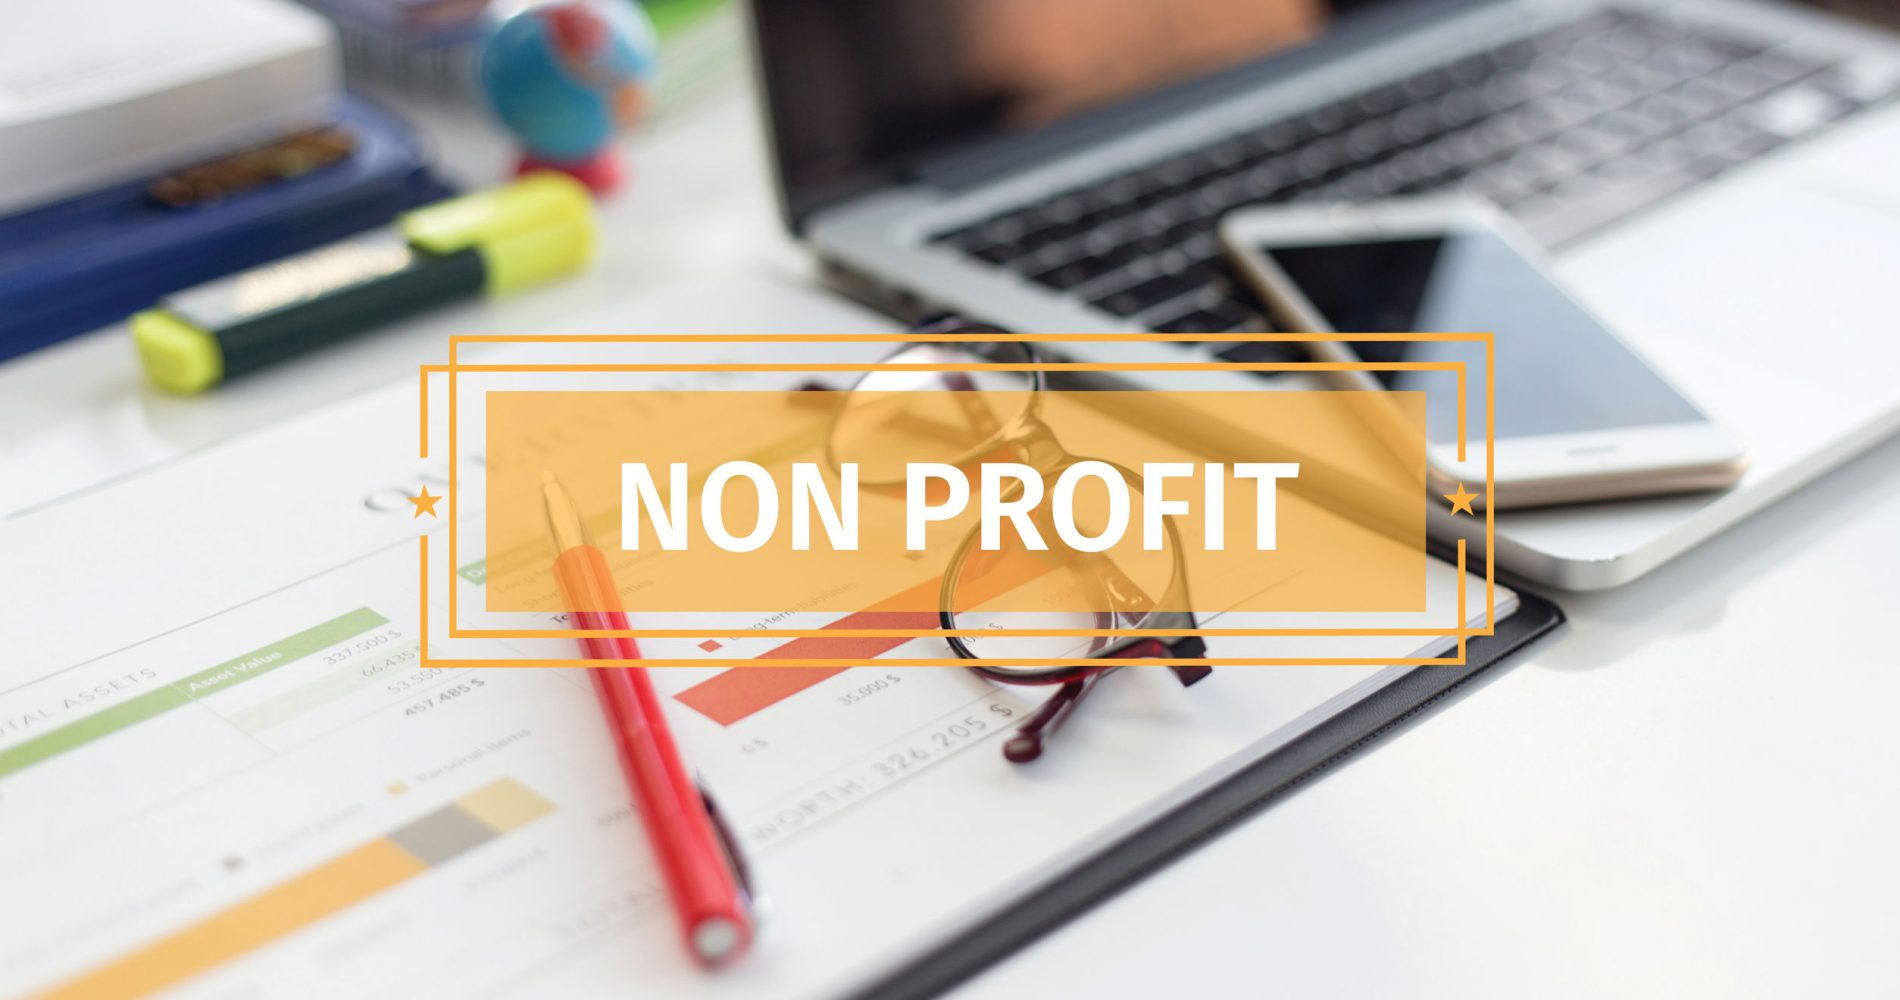 BUSINESS CONCEPT: NON PROFIT